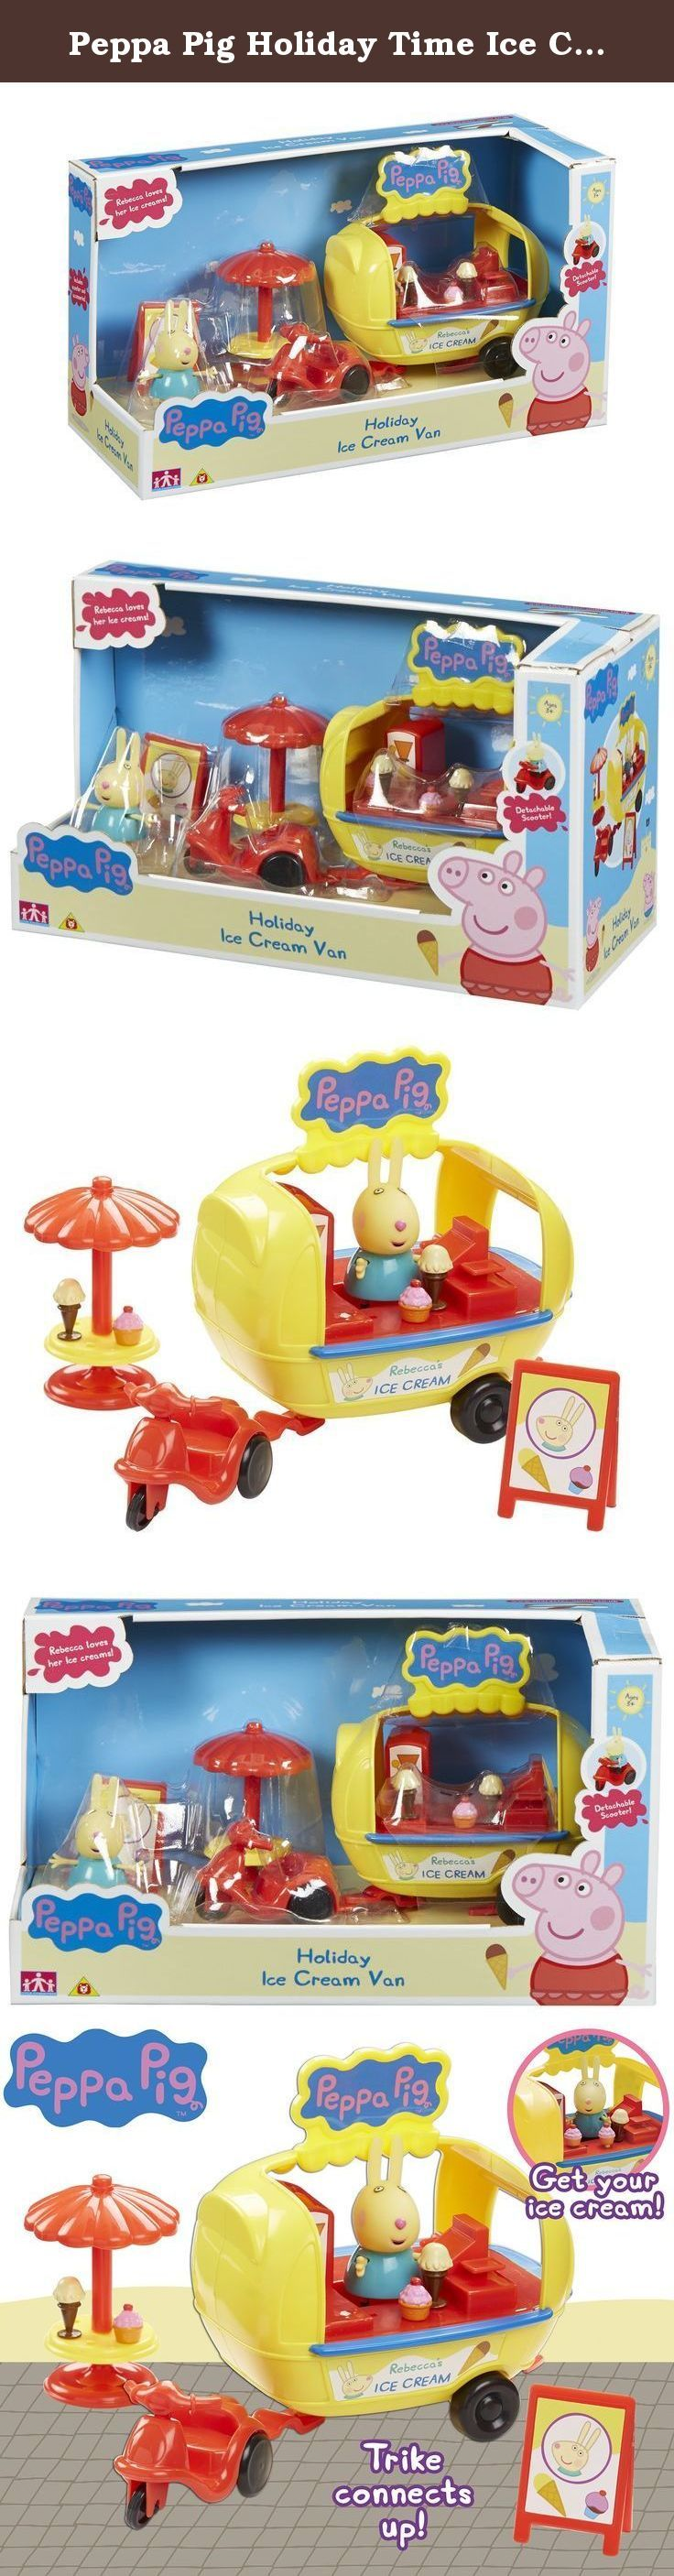 Peppa Pig Holiday Time Ice Cream Van With Accessories Playset. Cute Holiday Ice Cream Van with Tricycle, table with sun umbrella and A-board Sign. Help Peppa sell some yummy Ice Creams! Then connect up the tricycle & away Peppa goes!.